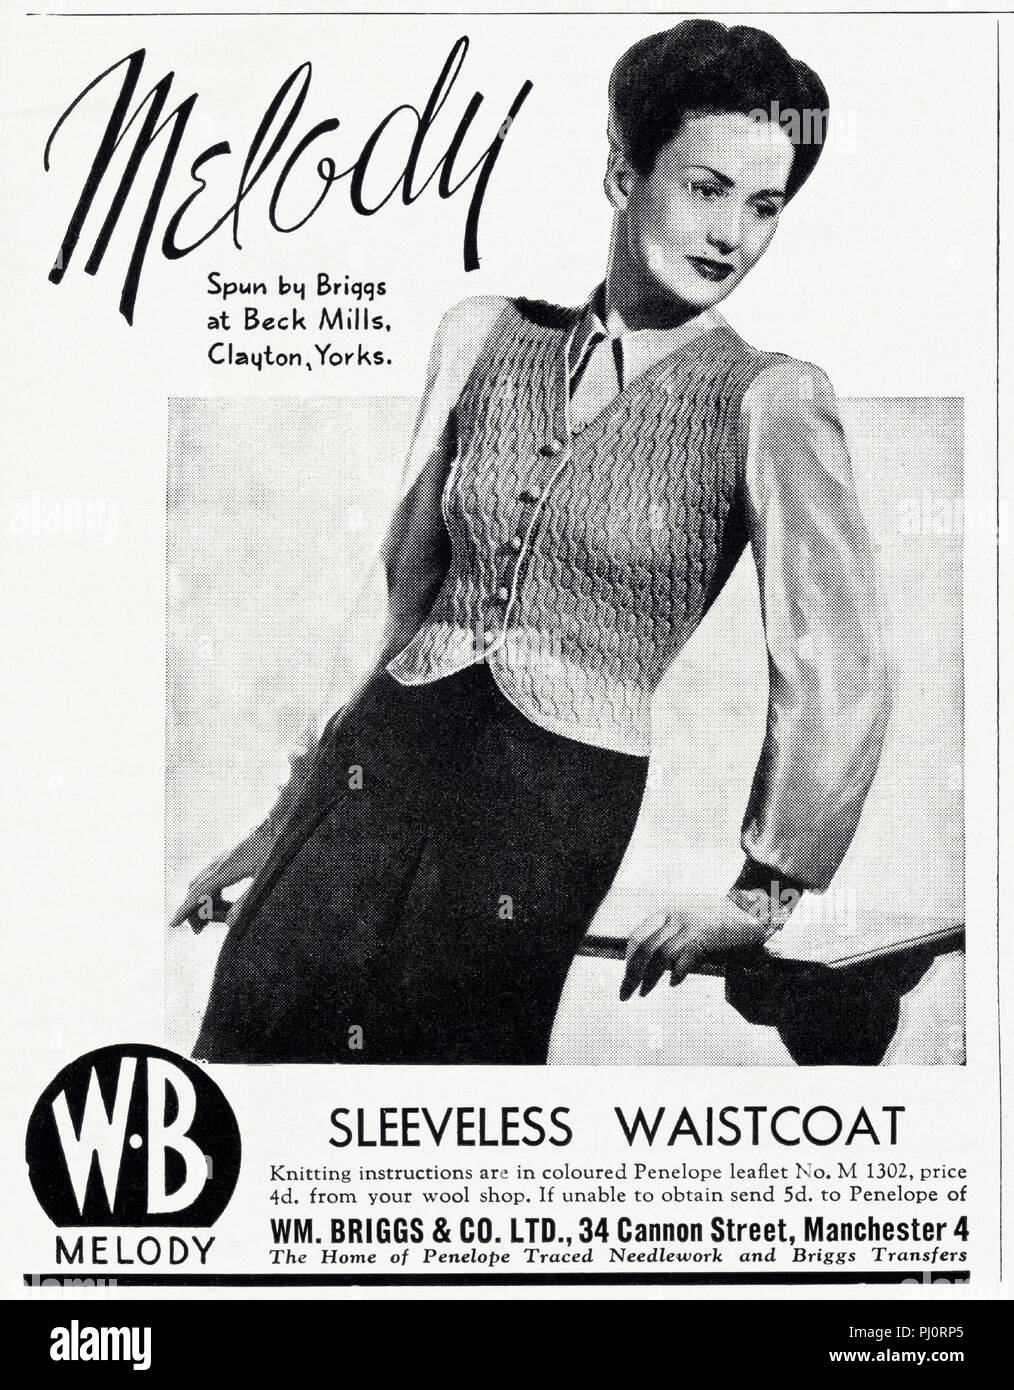 77e0af5de 1940s old vintage original advert advertising ladies fashion knitwear by  Melody of Manchester England UK in